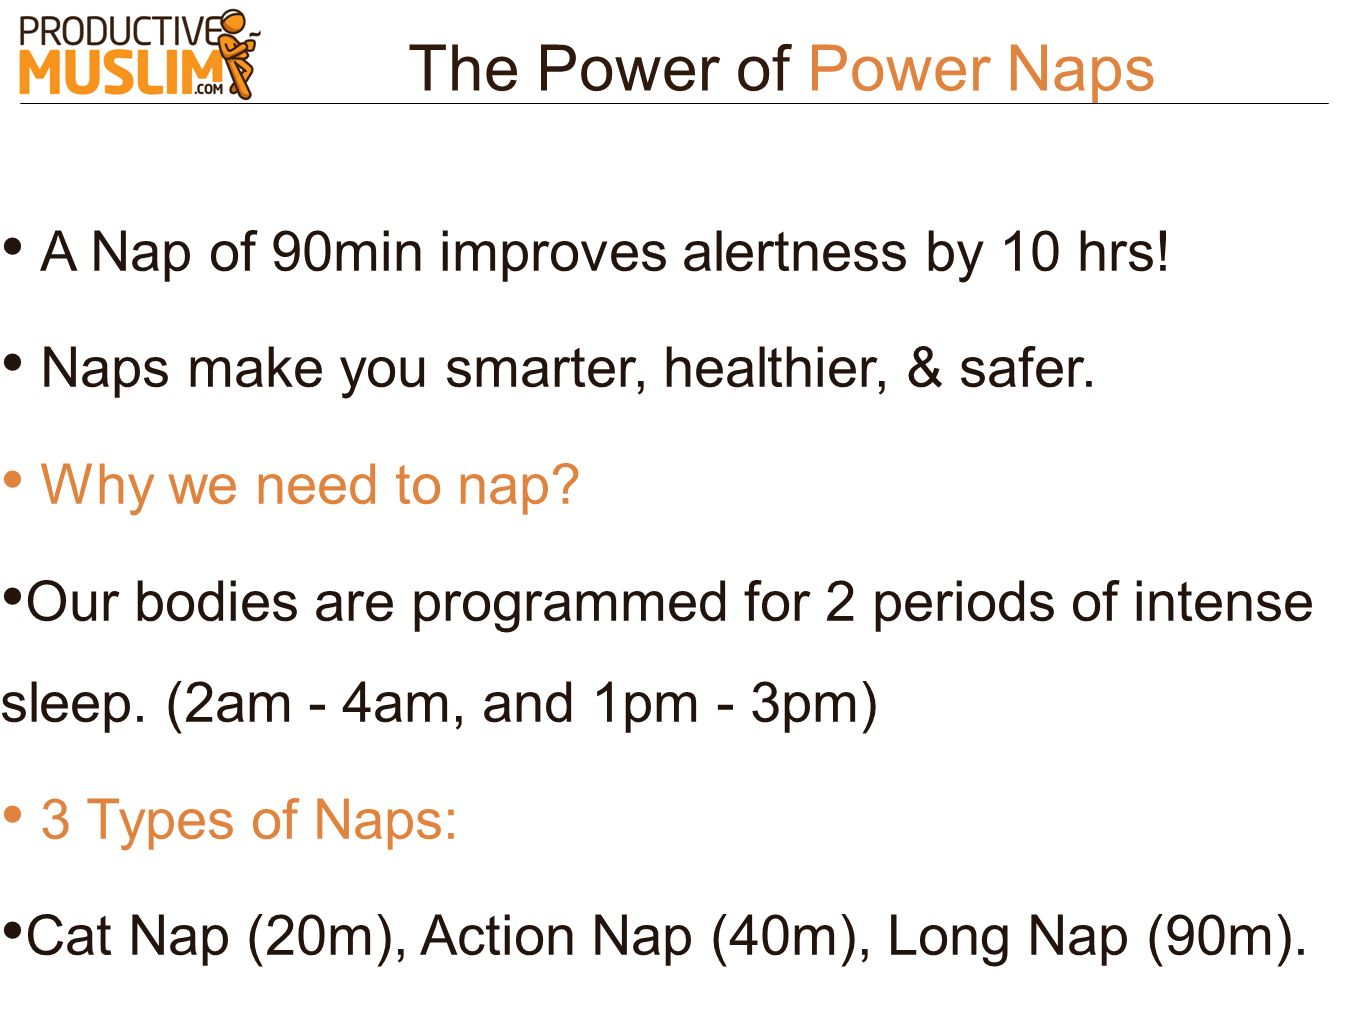 The Power of Power Naps A Nap of 90min improves alertness by 10 hrs!